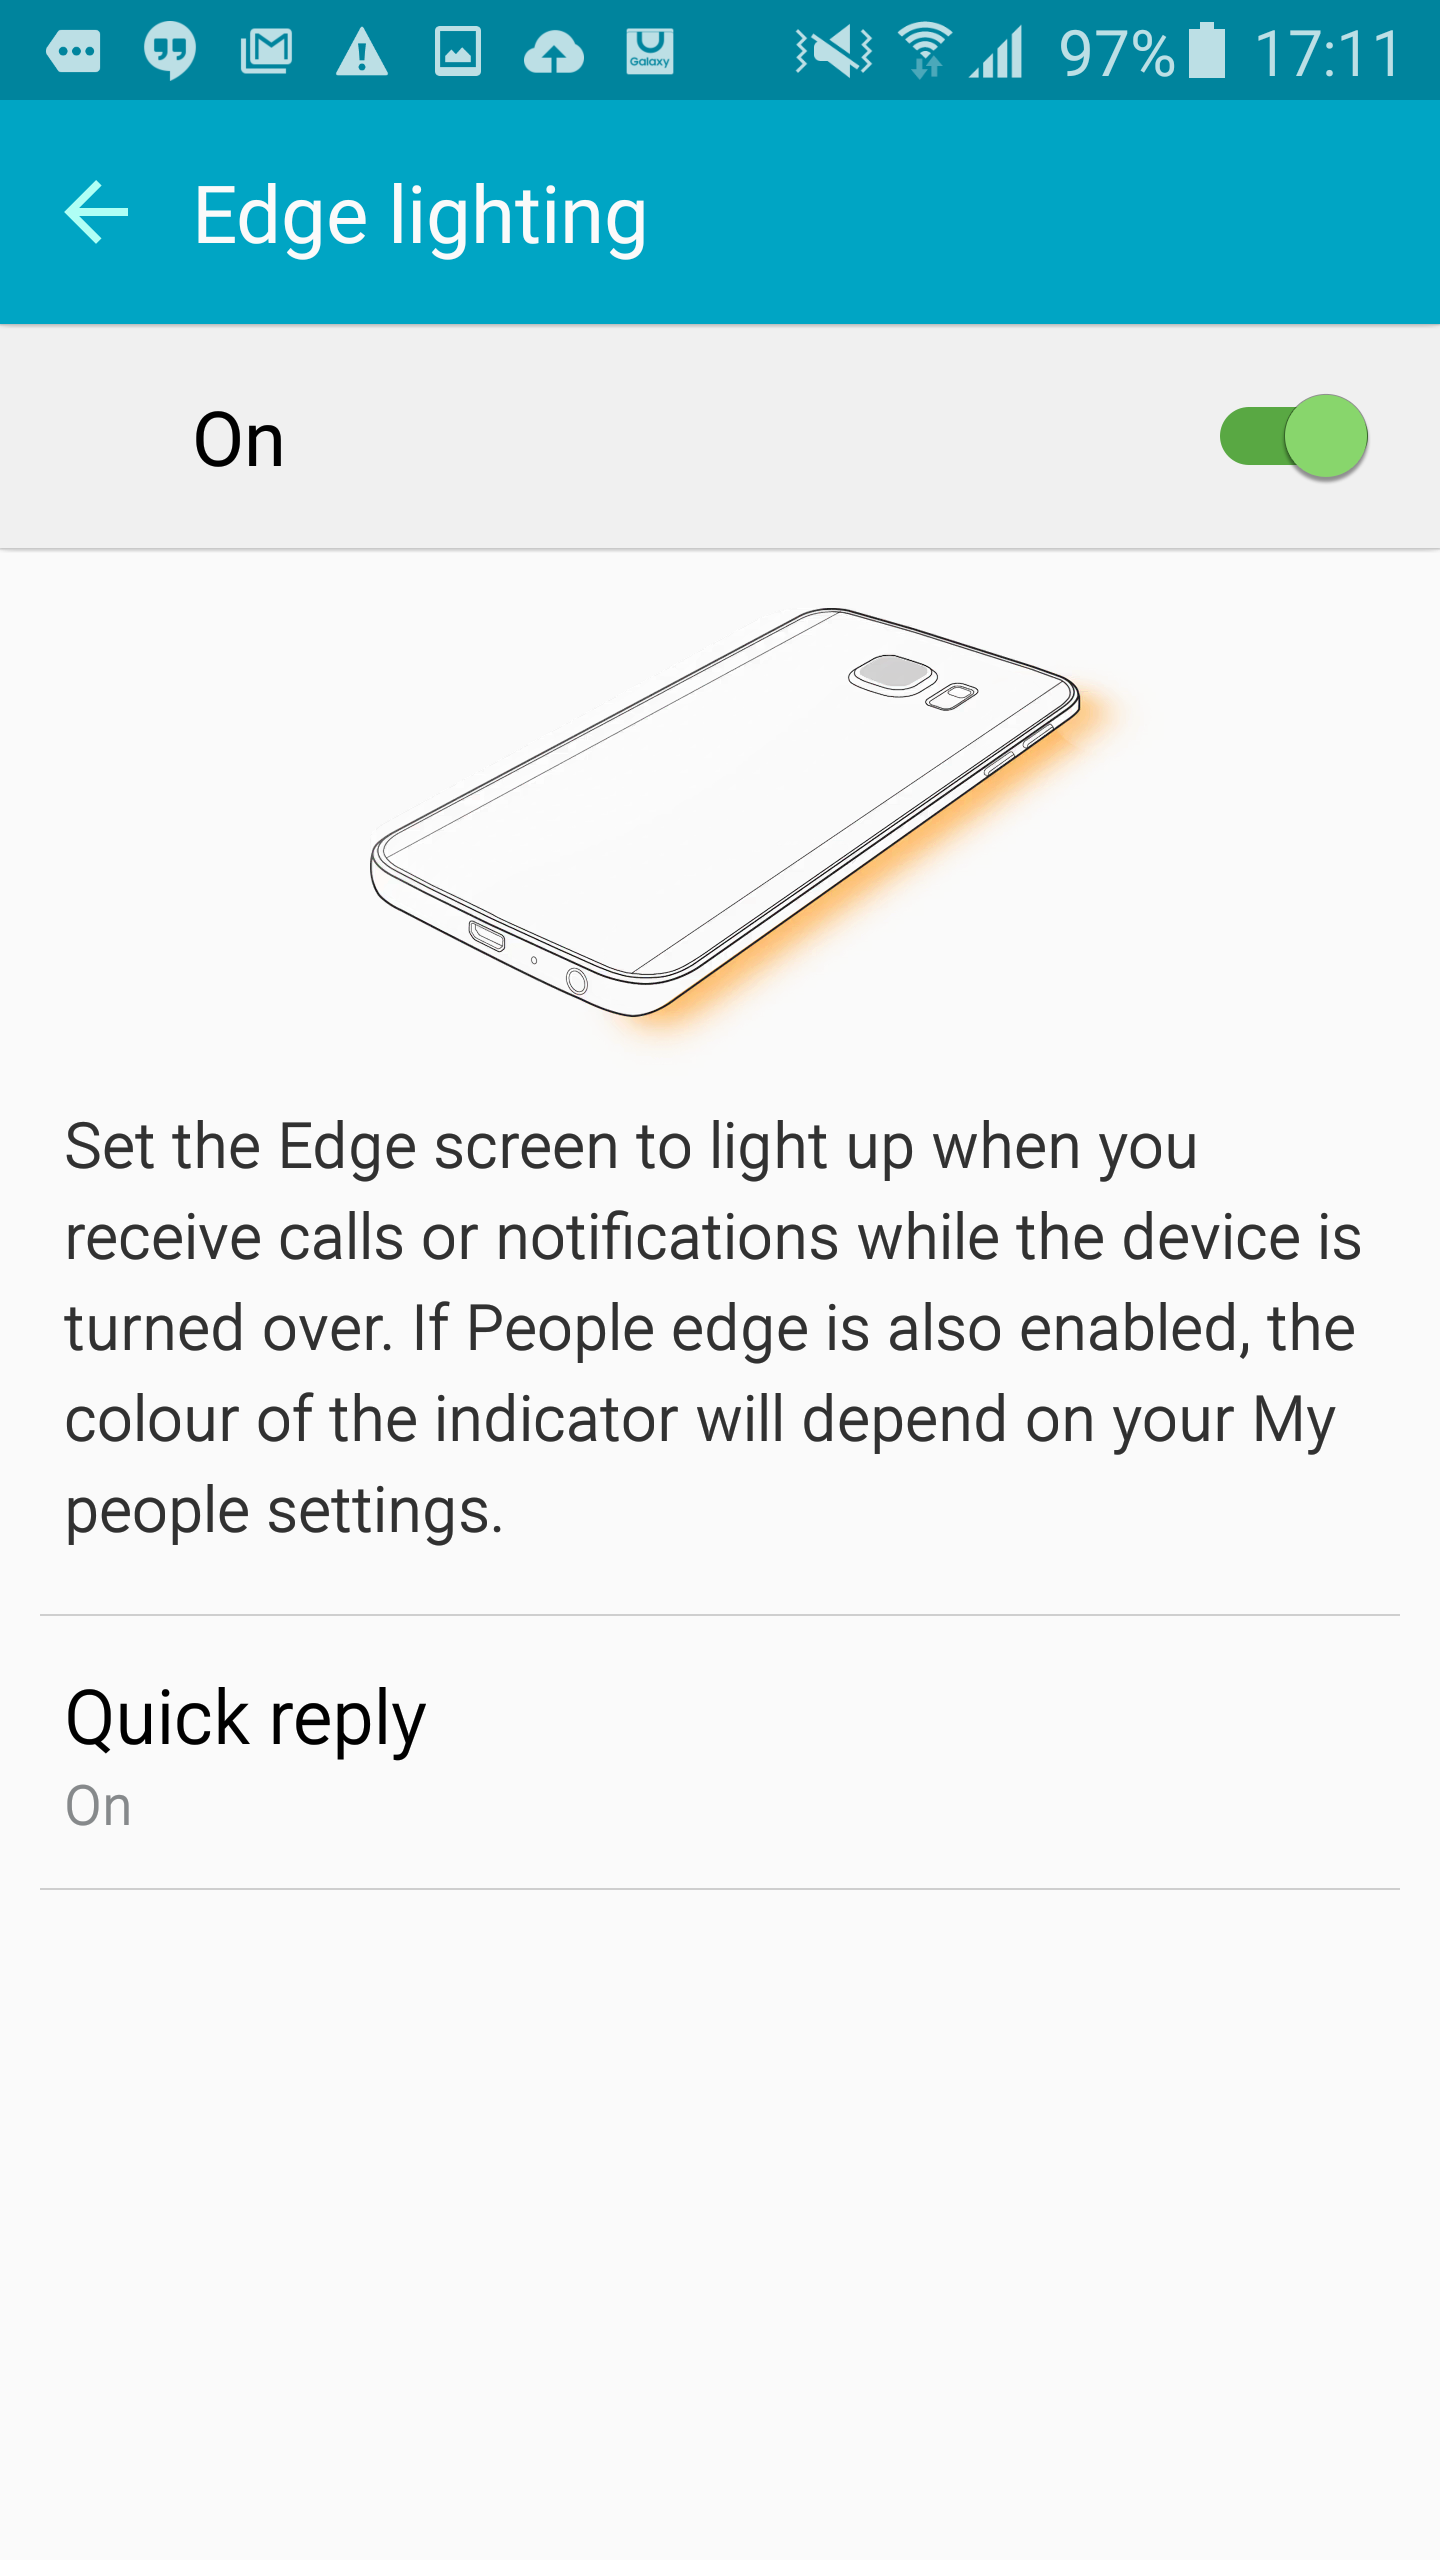 Edge lighting only works with the phone placed face down.